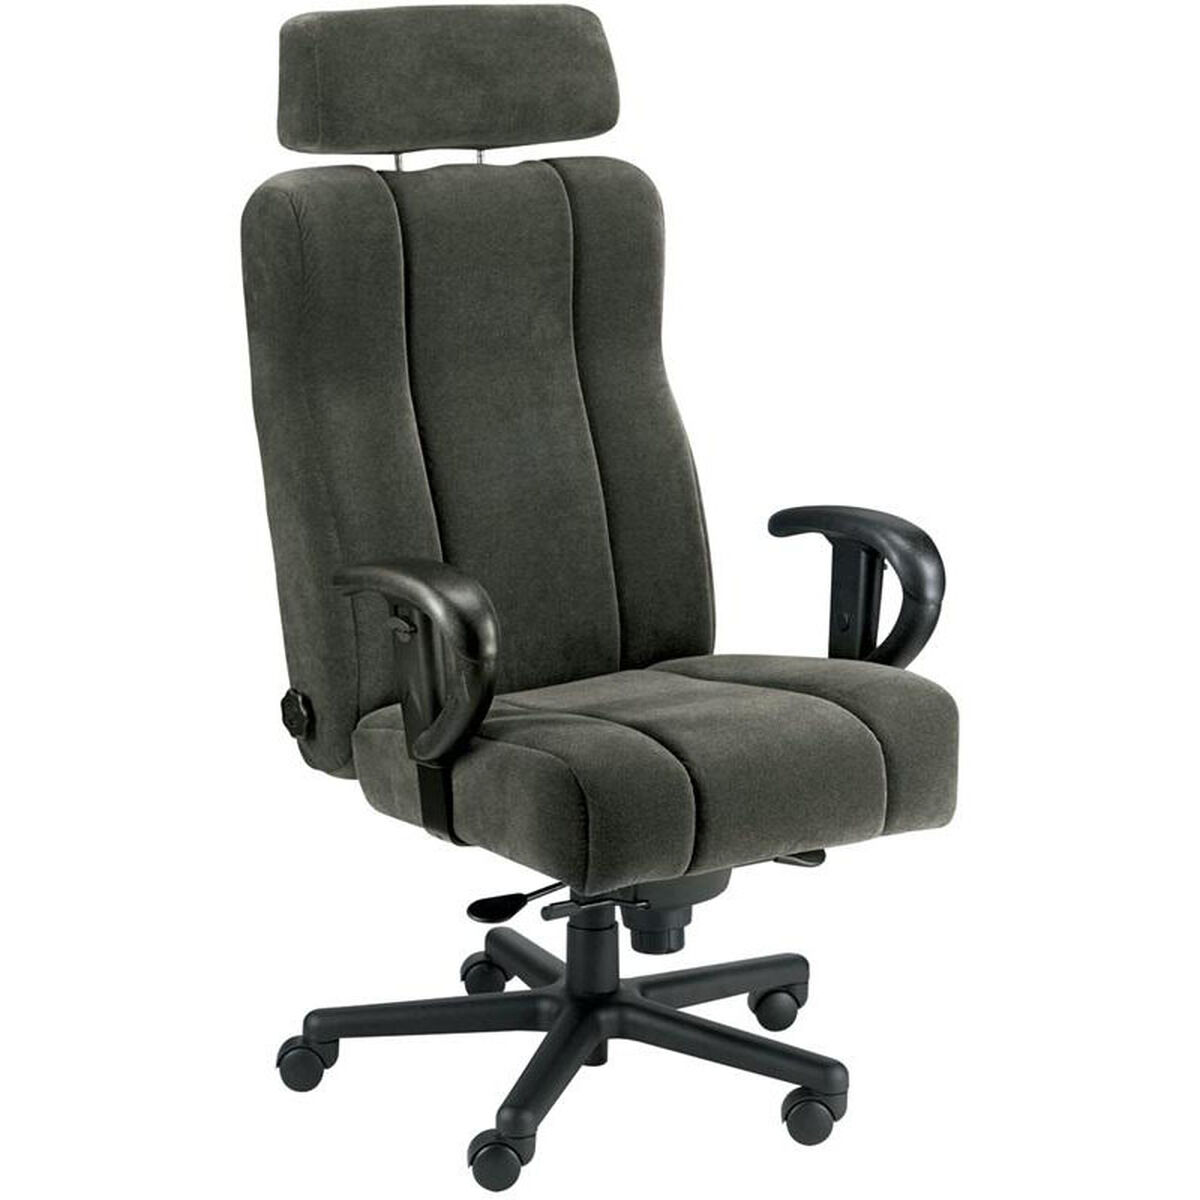 Lumbar Support Chair Fabric OF-CAPT-F | Furniture4Less.com on wide wing back chairs, wide slipper chair, wide leather couch, wide lounge chair, wide beach chair, double wide chair, wide seat chairs, wide wood chairs, wide church chairs, extra wide chair, wide reclining chair, wide rocking chair, wide shower chair, wide chairs with arms, wide accent chair, wide living room chair, wide lift chair, wide computer chairs, wide chairs for heavy people, wide dining chair,